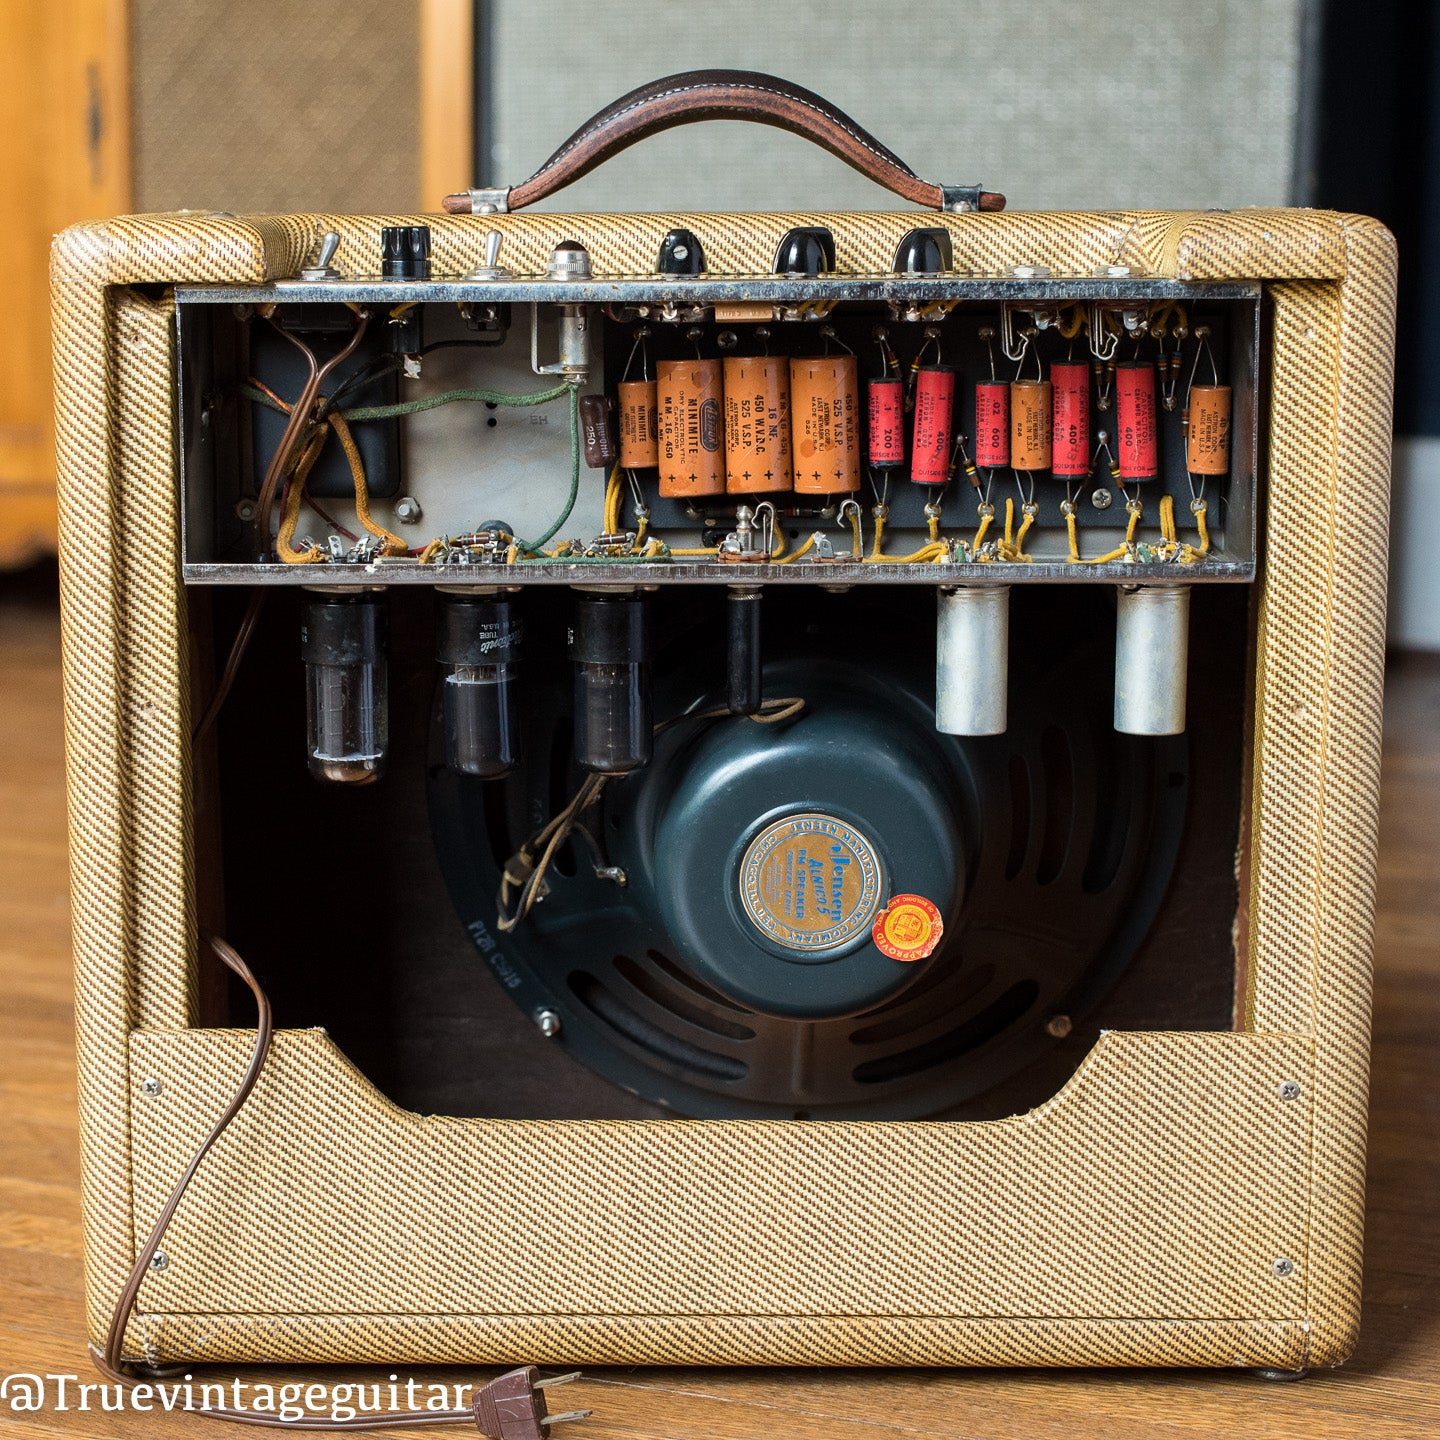 chassis, circuit, capacitors, Jensen speaker, 1955 Fender Deluxe amp tweed